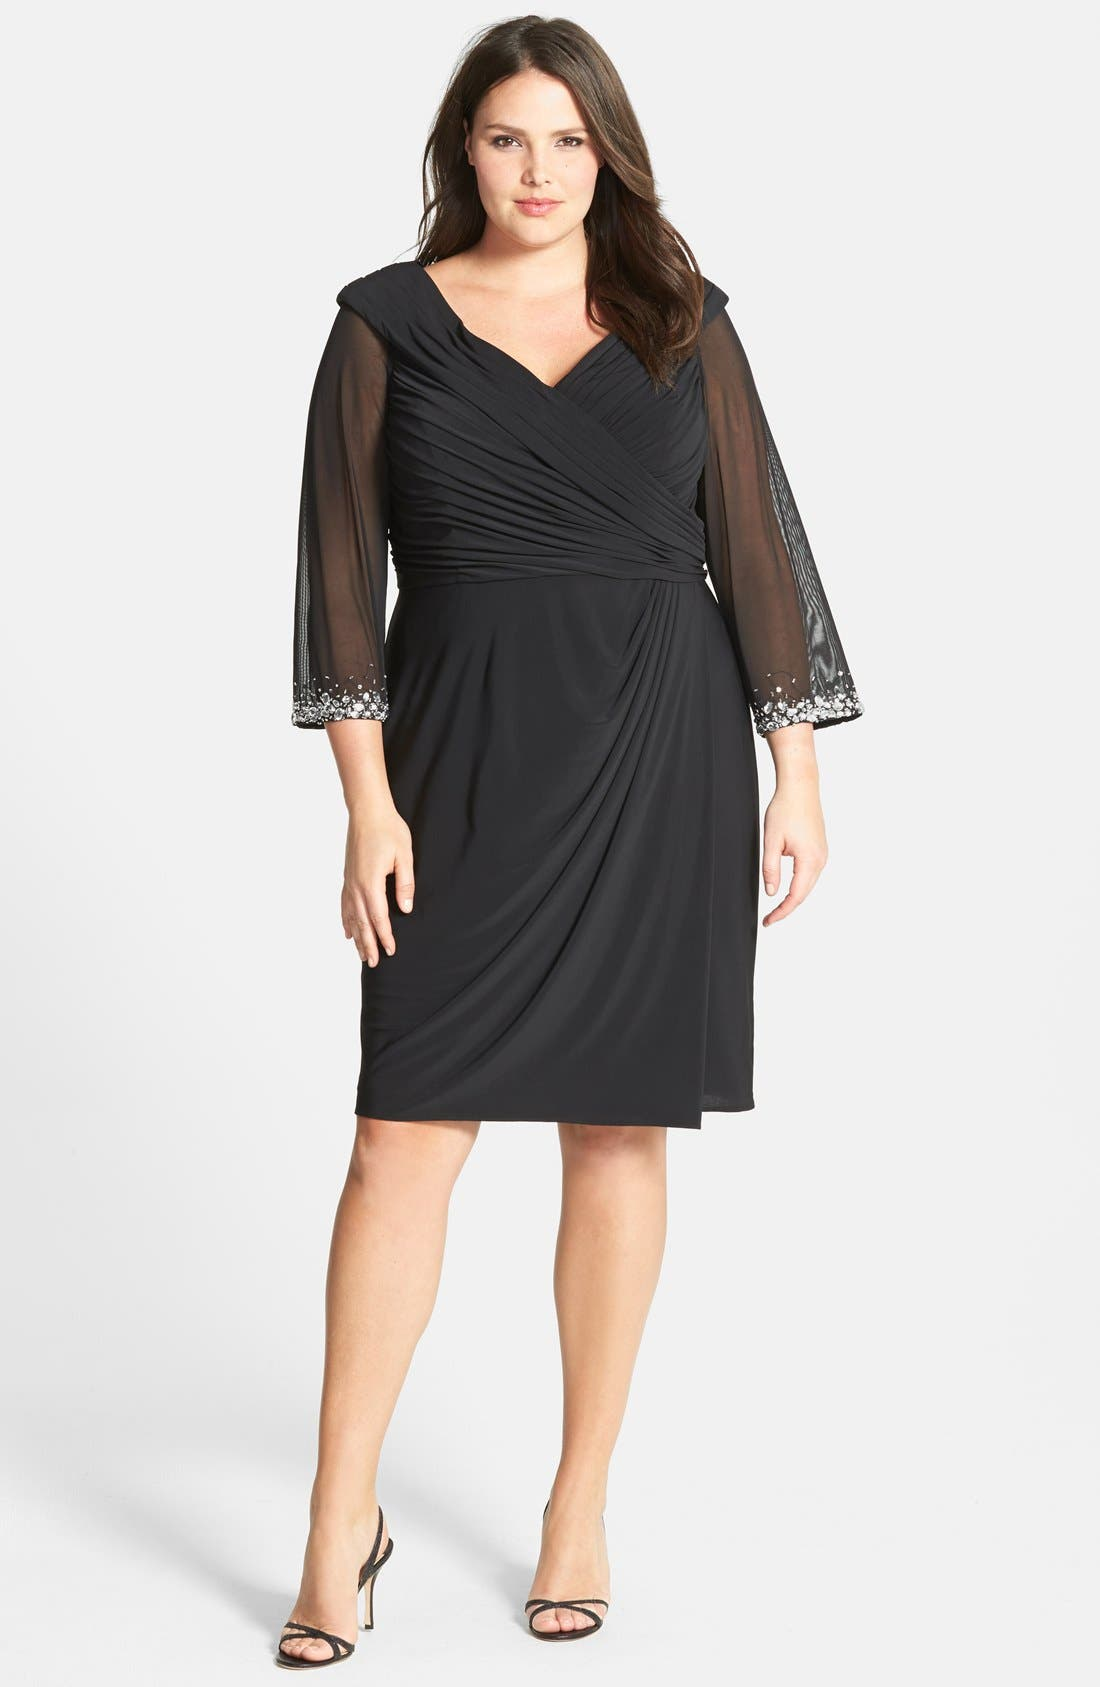 Alternate Image 1 Selected - Alex Evenings Embellished Portrait Collar Cocktail Dress (Plus Size)